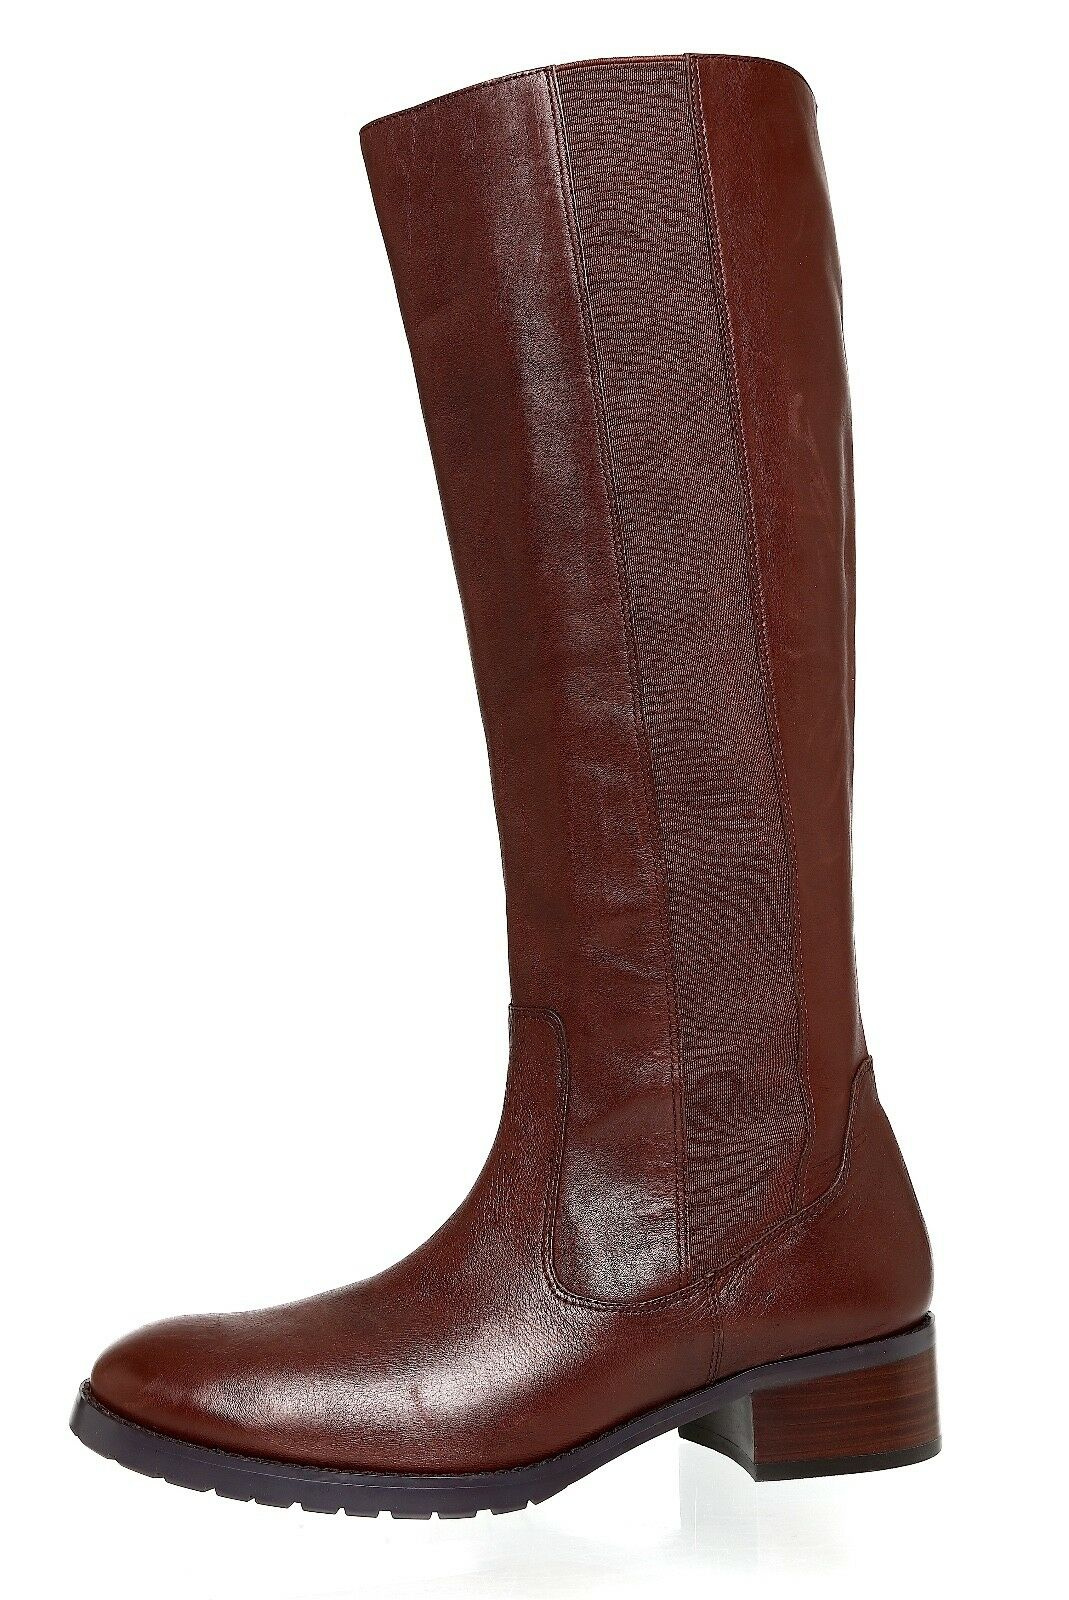 Donald J Pliner Buriel Leather Riding Boot Brown Women Sz 8 M 4051